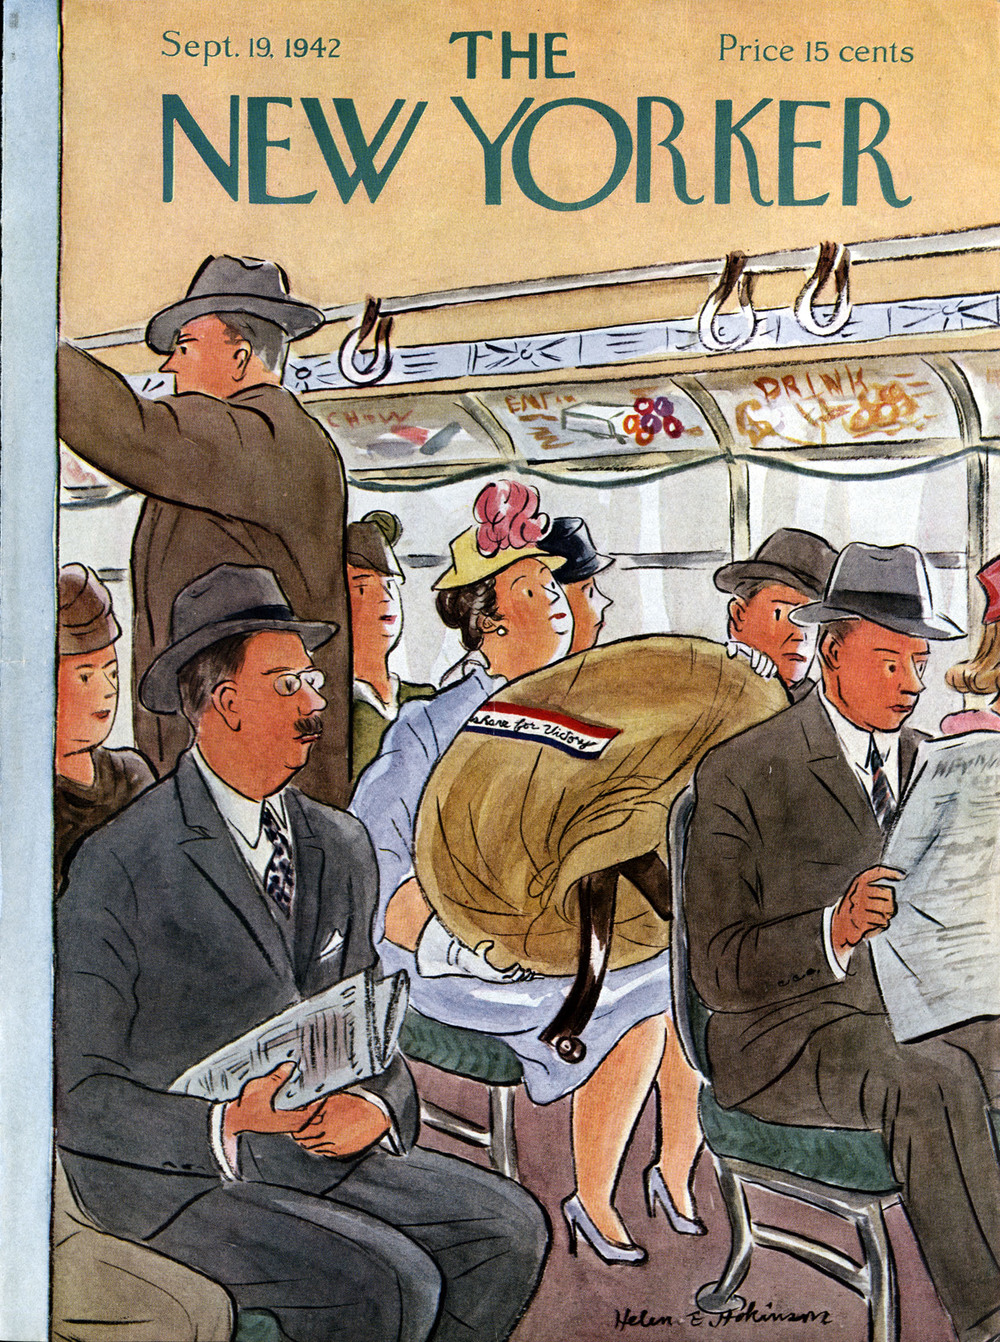 Helen E. Hokinson, Cover Illustration for The New Yorker. September 19, 1942.